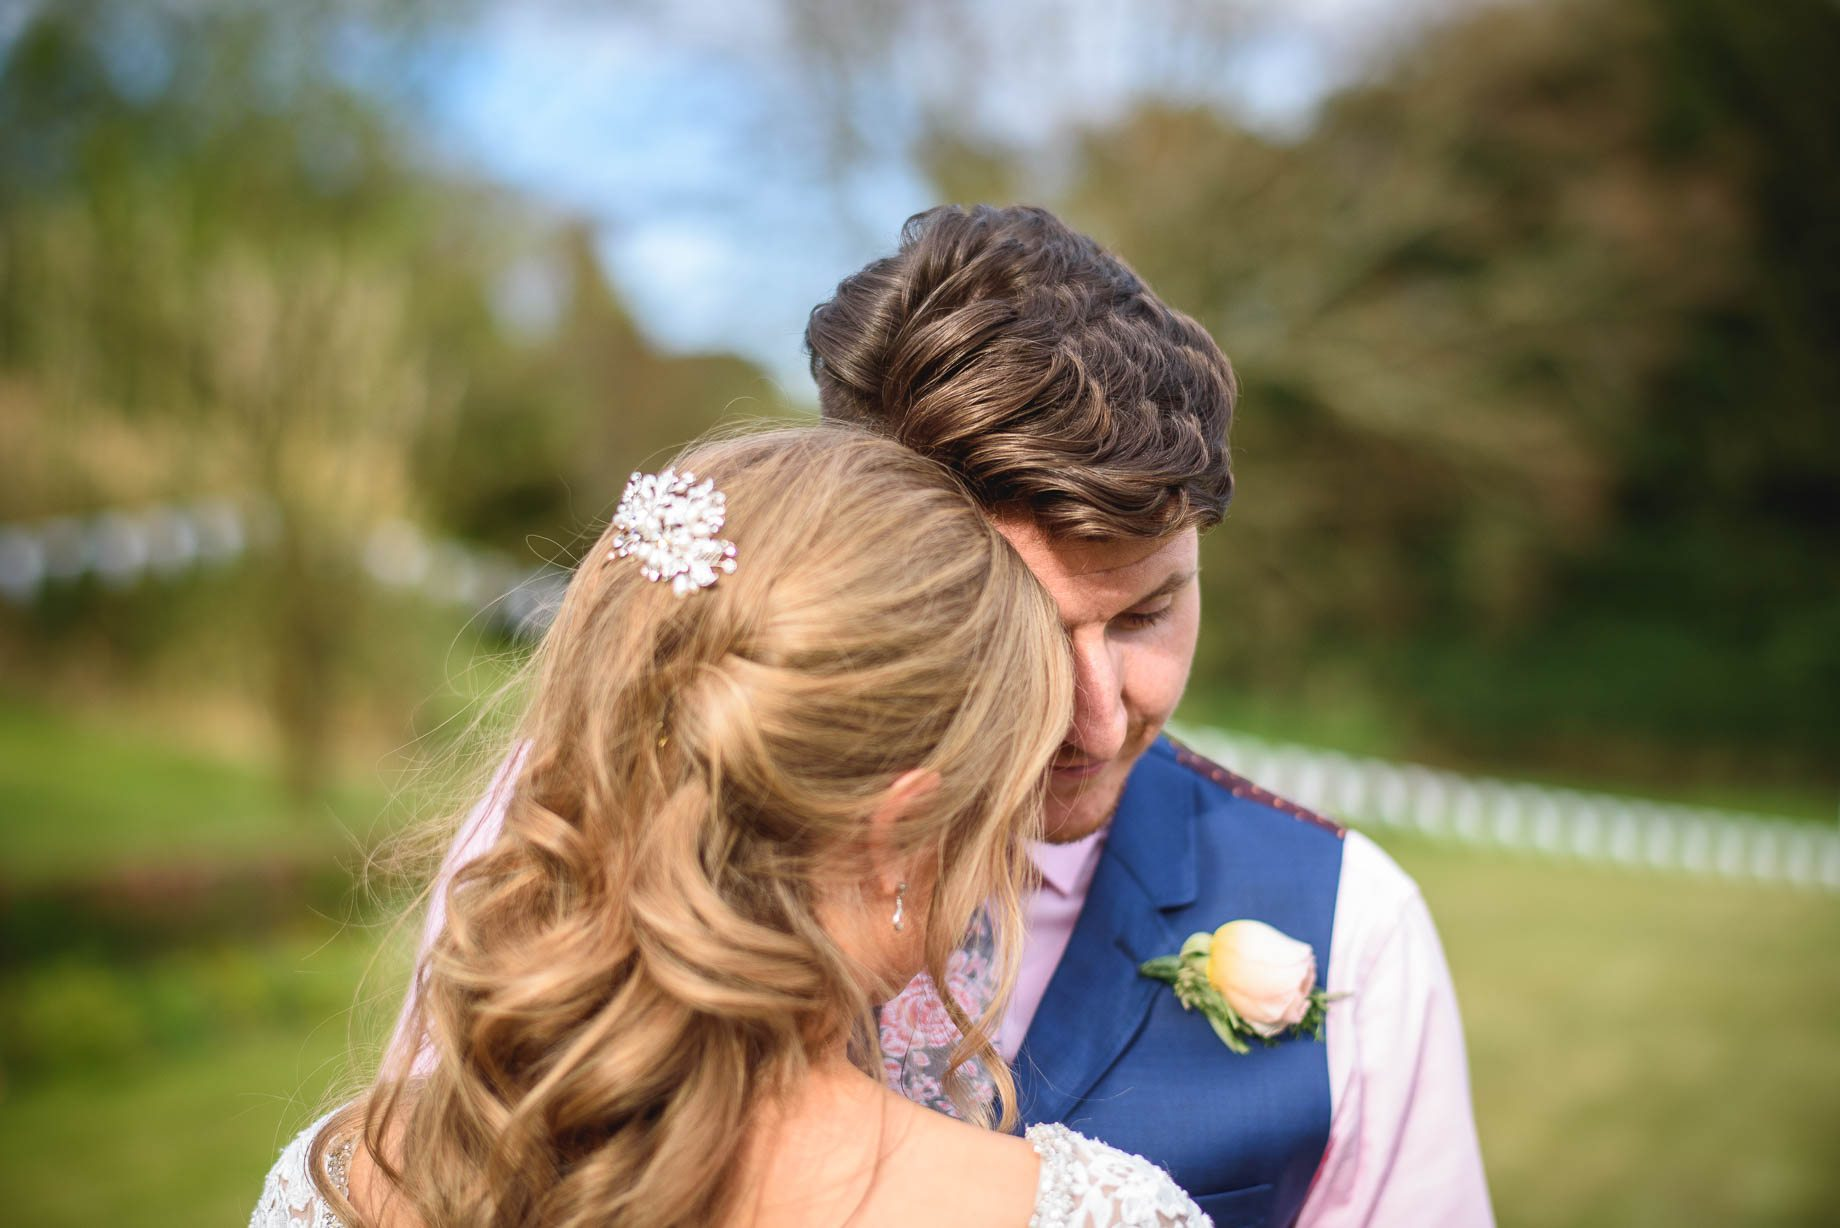 Hampshire wedding photography by Guy Collier - Emily and Tom (139 of 164)